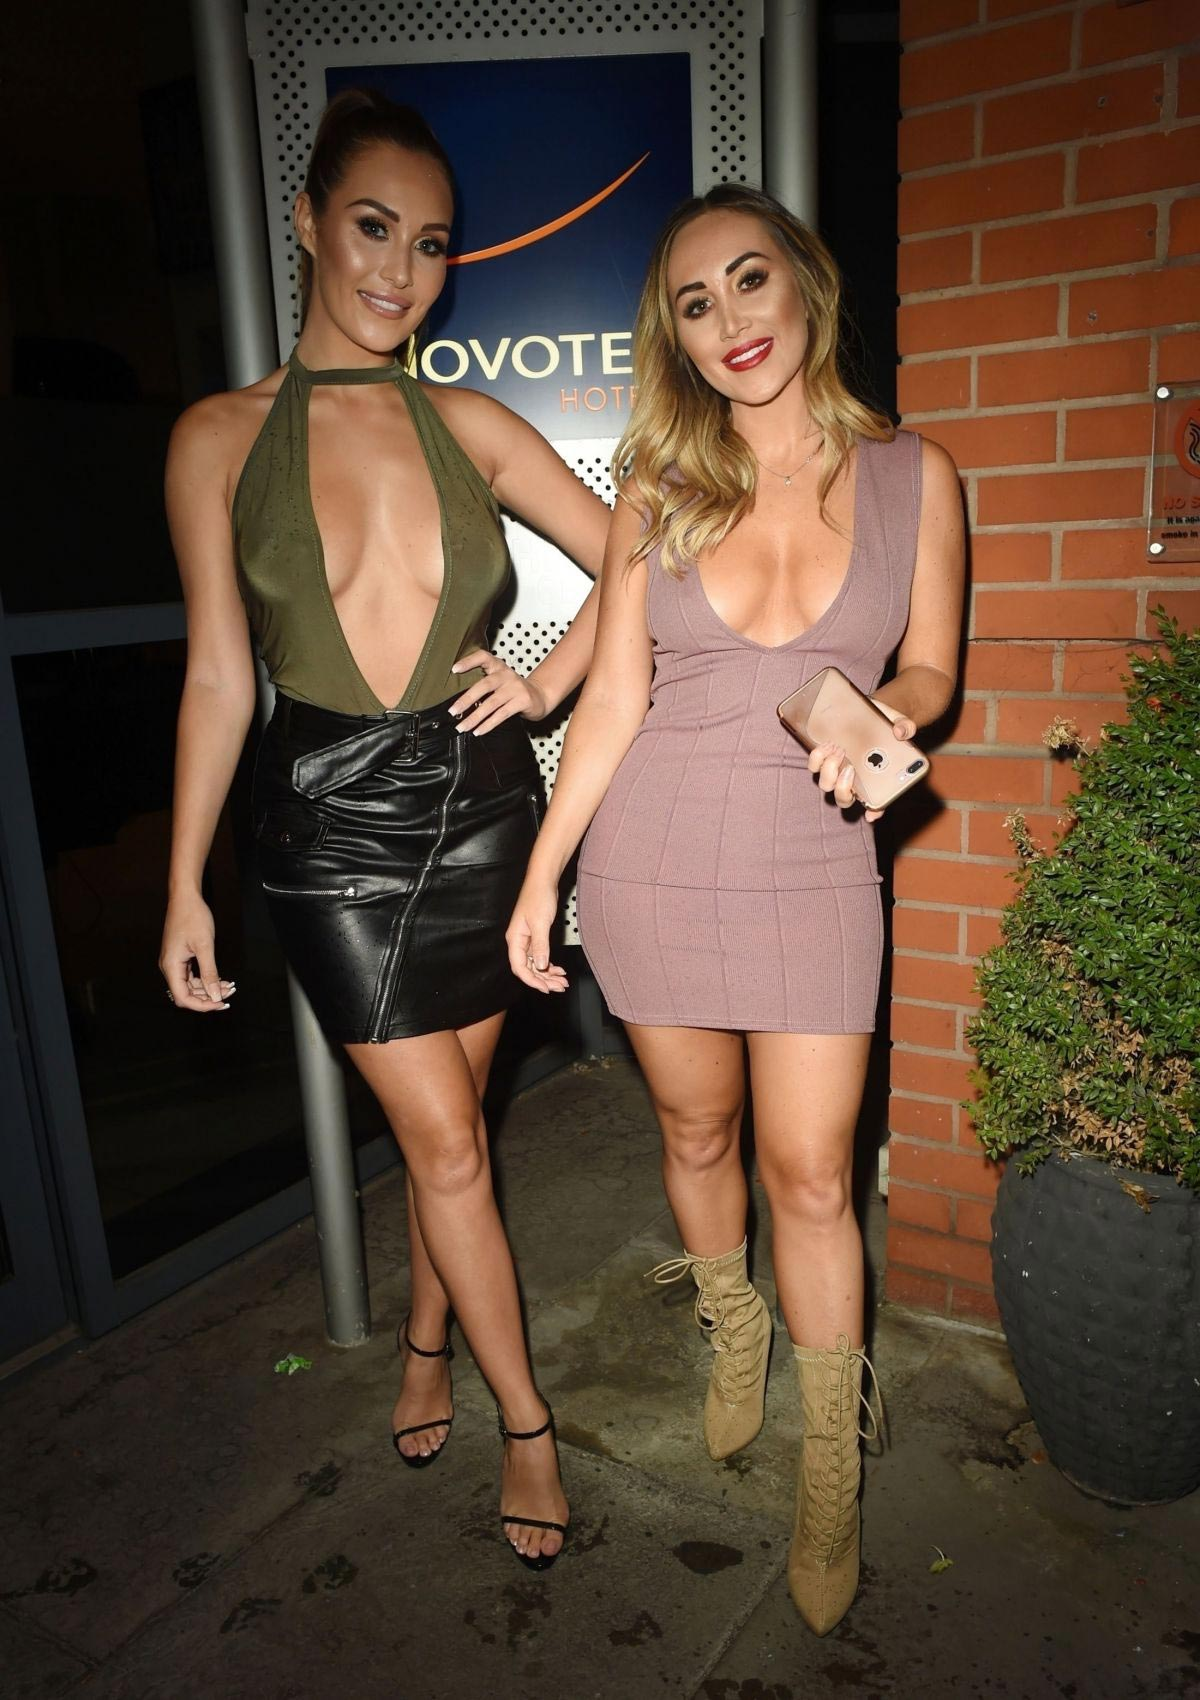 Chloe Goodman and Lauryn Goodman at Novotel Hotel in Manchester 2018/08/20 1